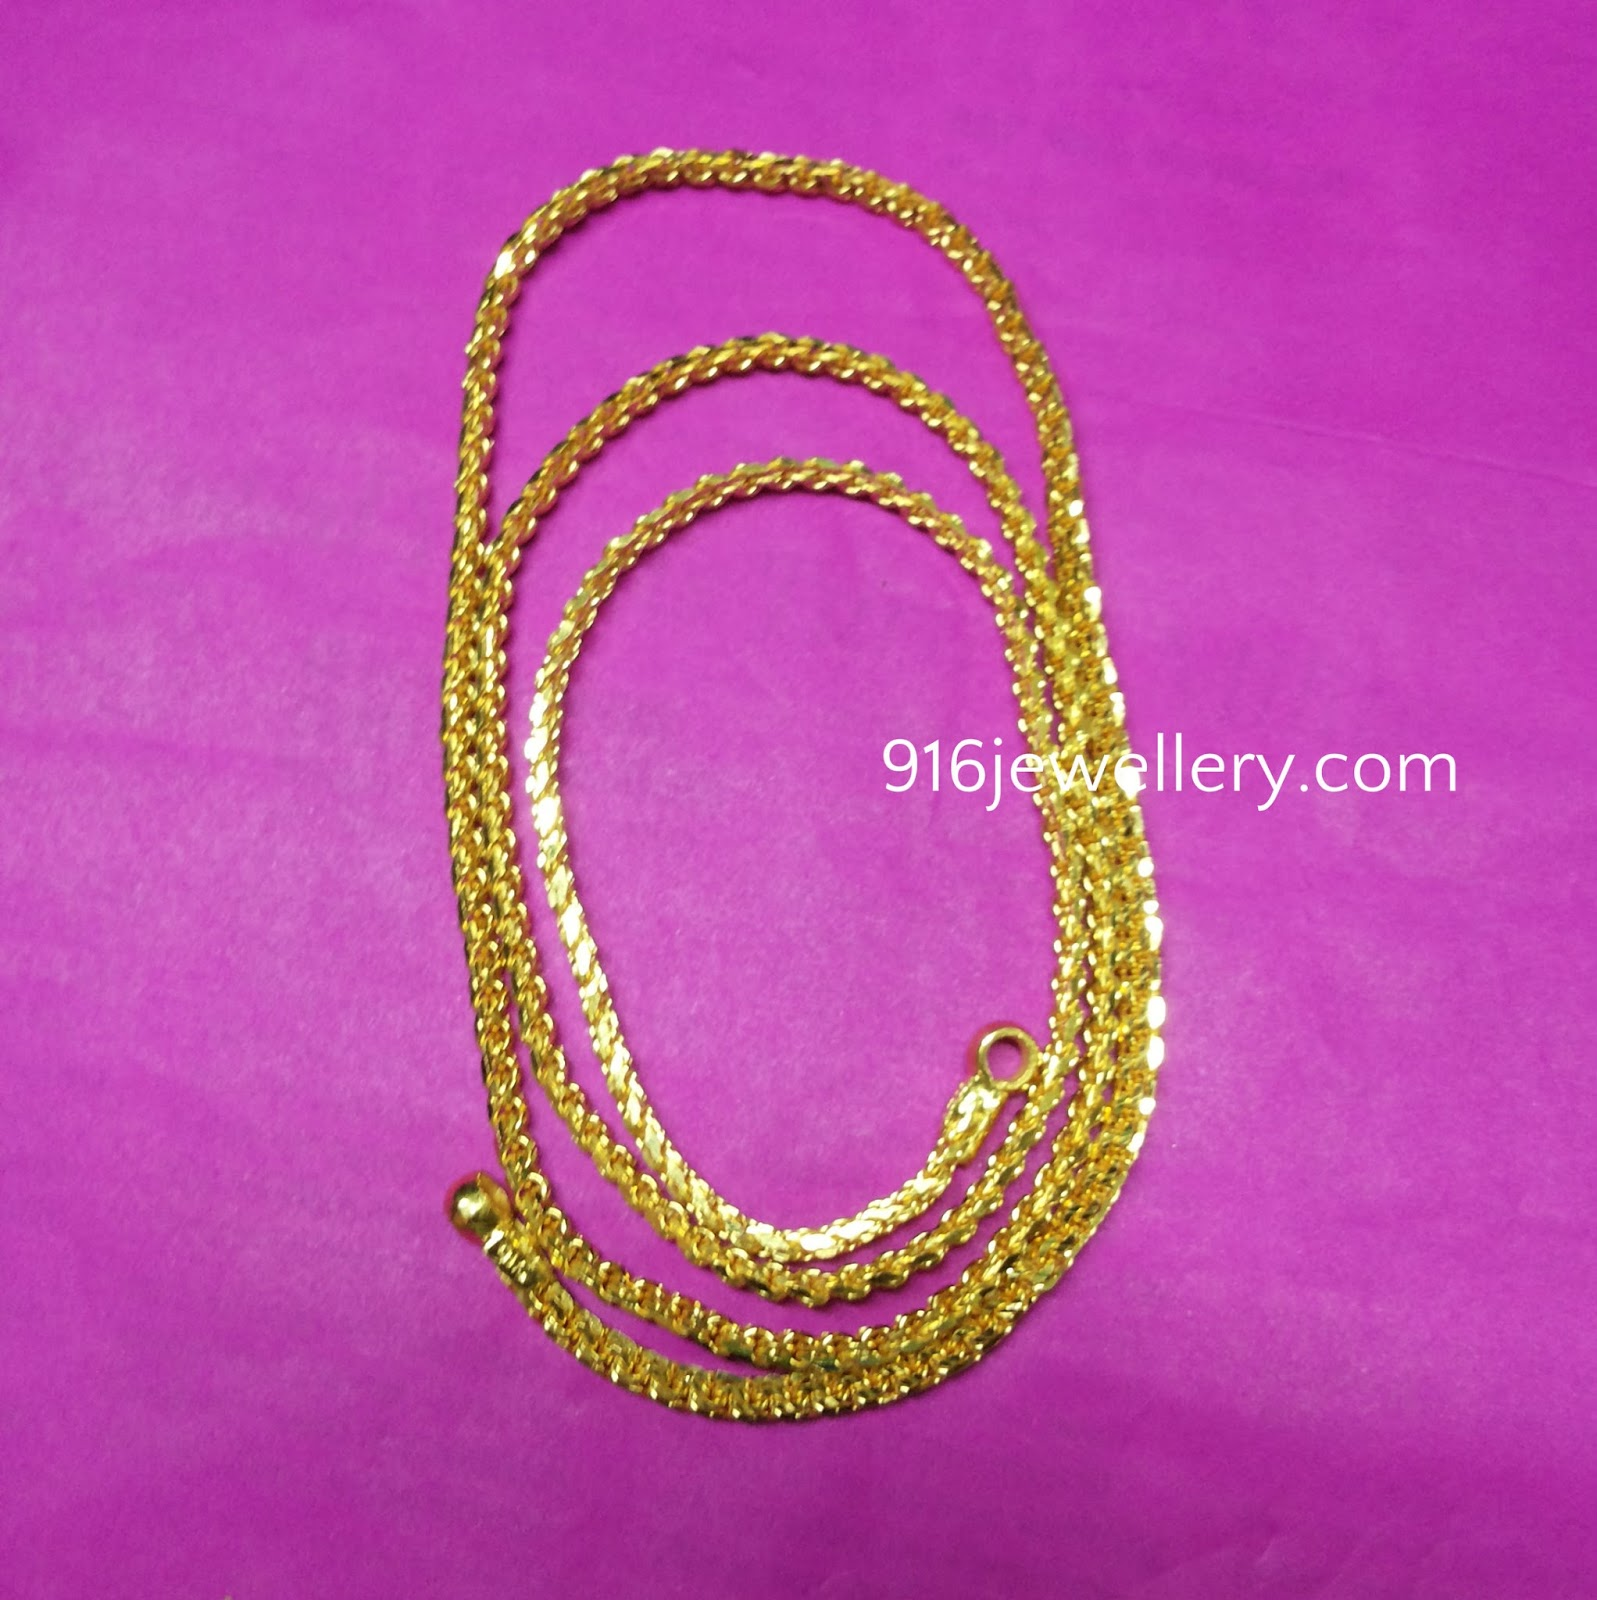 916 jewellery ||Chains: Gold Chains Designs - Model basha ...